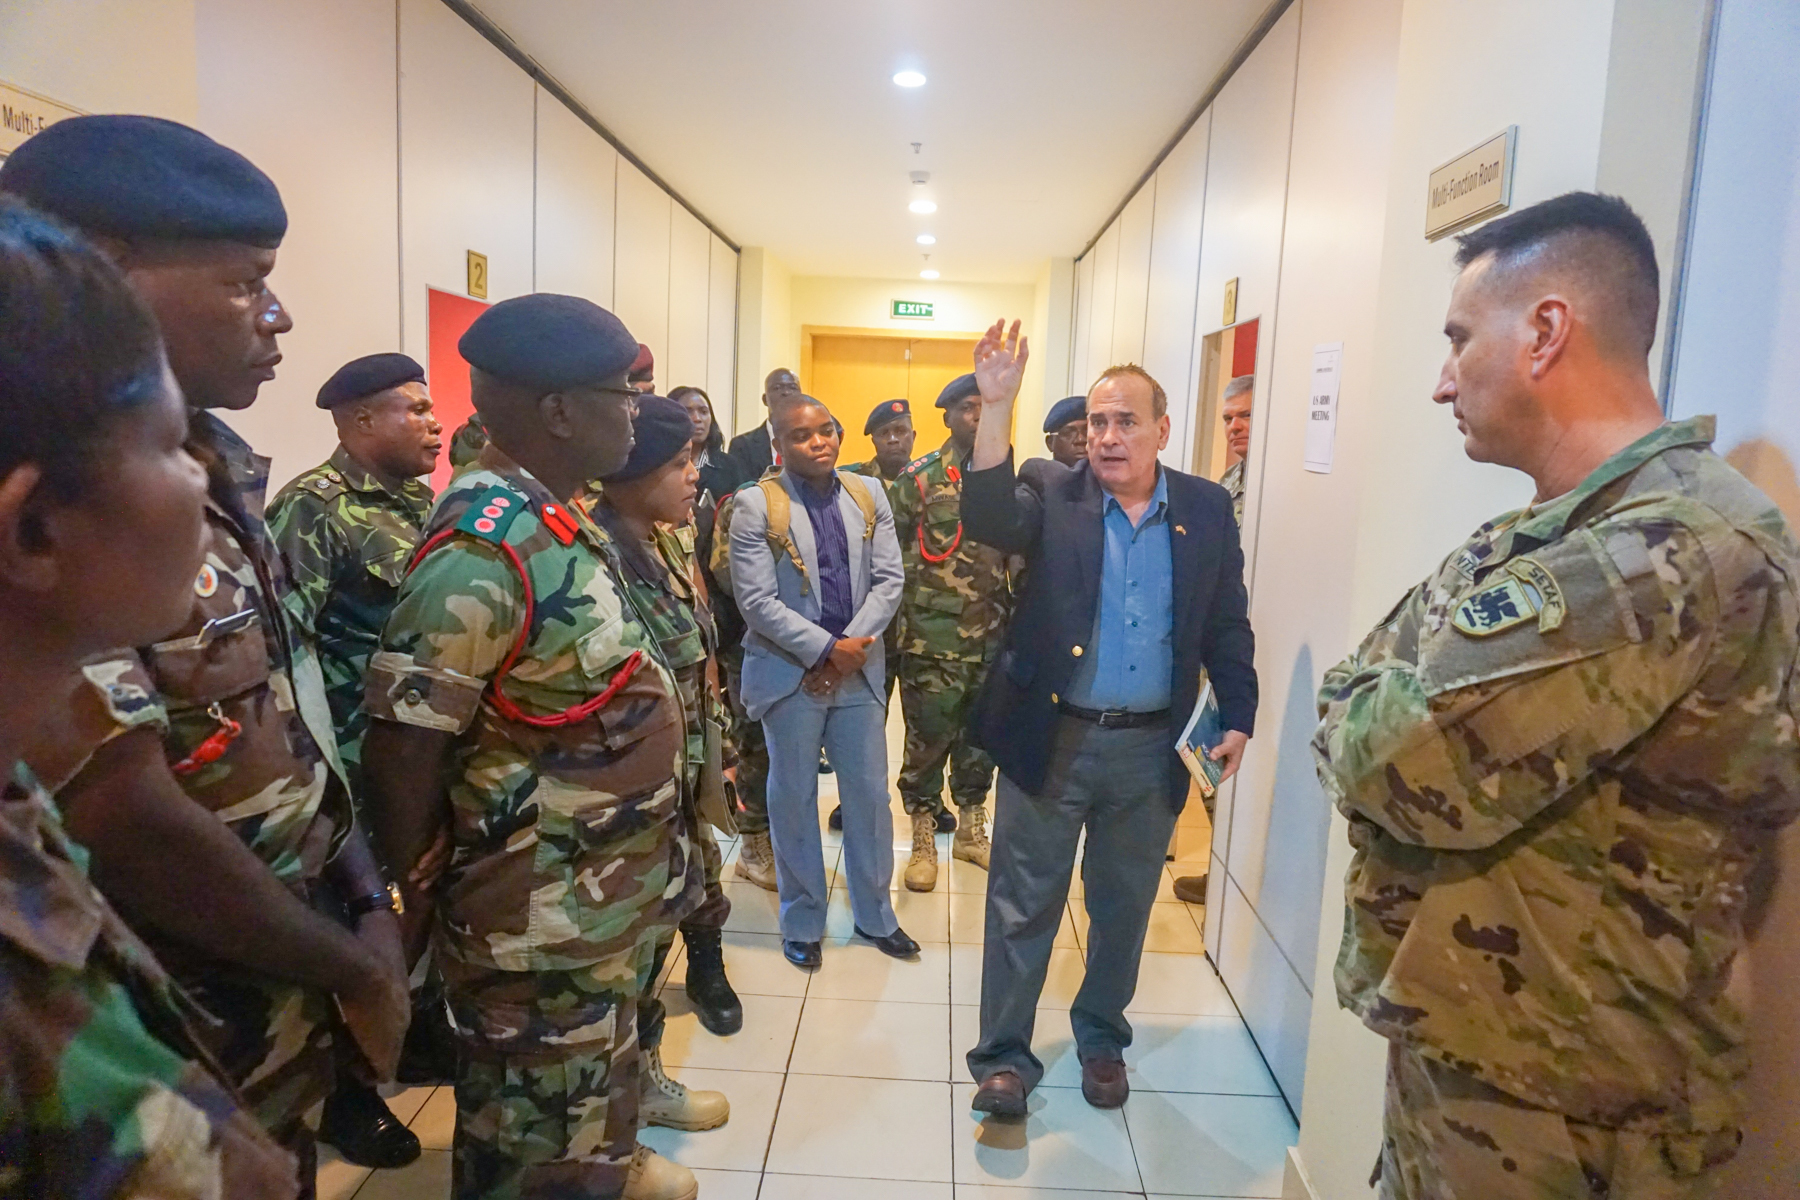 Manuel Melendez, U.S. Army Africa conference planner, briefs U.S. and Malawi military planners at the Bingu Wa Mutharika International Conference Center during the final planning event for the Africa Land Forces Summit 2017, Lilongwe, Malawi, March 27, 2017. ALFS is an annual, weeklong seminar bringing together land force chiefs from across Africa for candid dialog to discuss and develop cooperative solutions to regional and trans-regional challenges and threats.